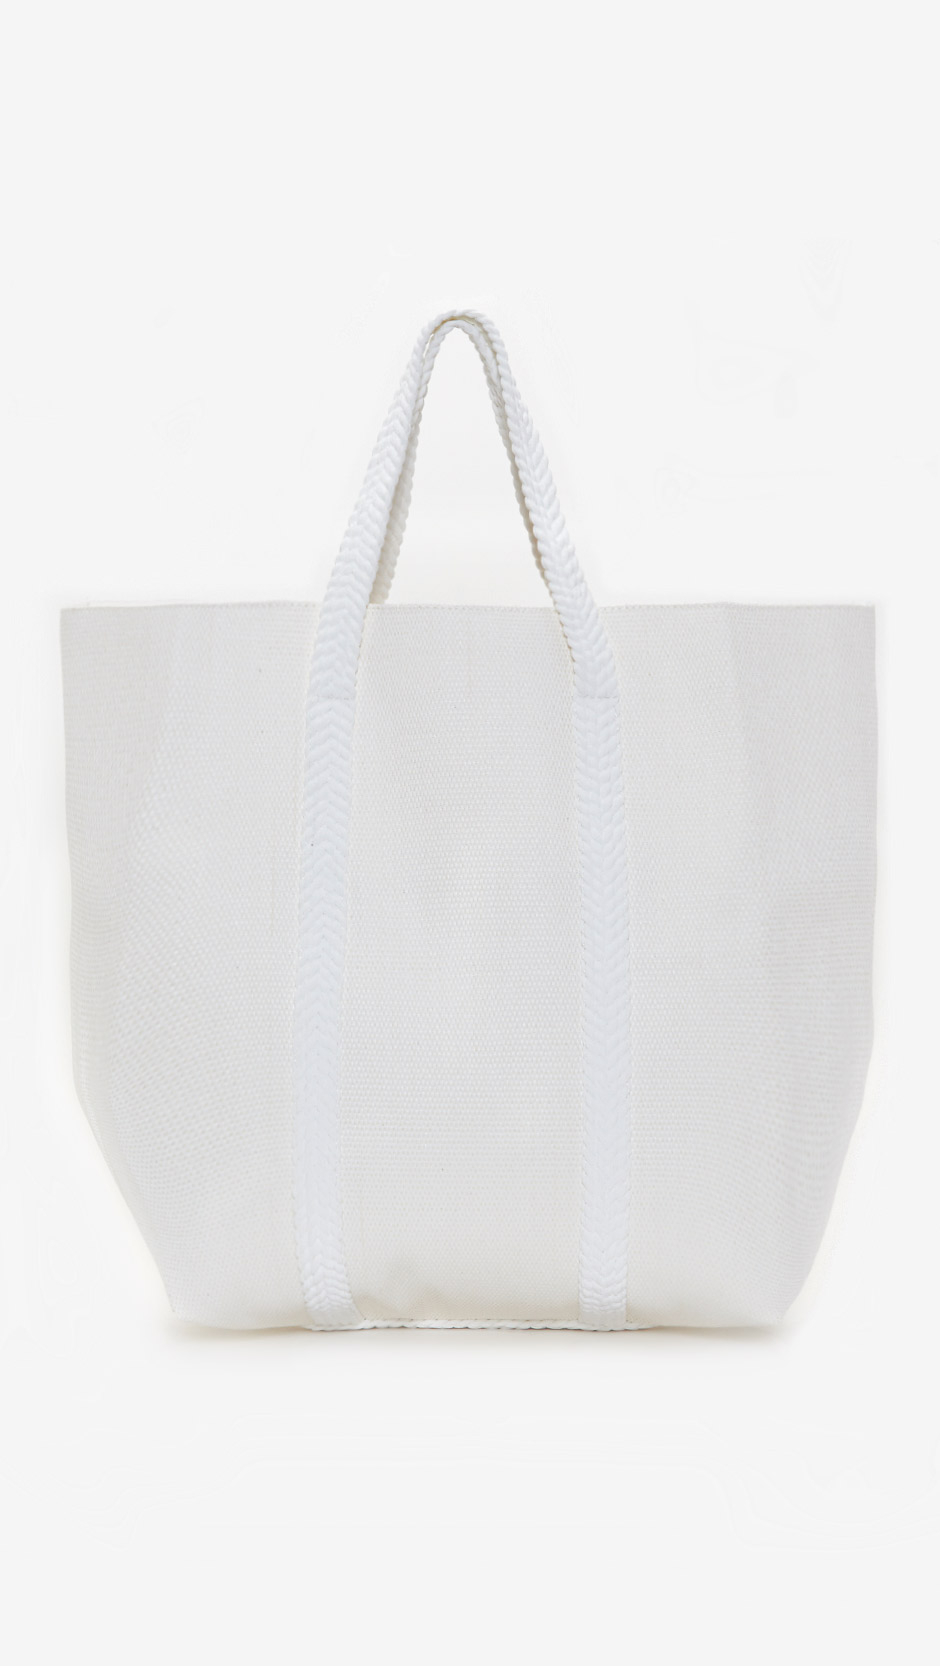 Chloé Beach Bag in White | Lyst